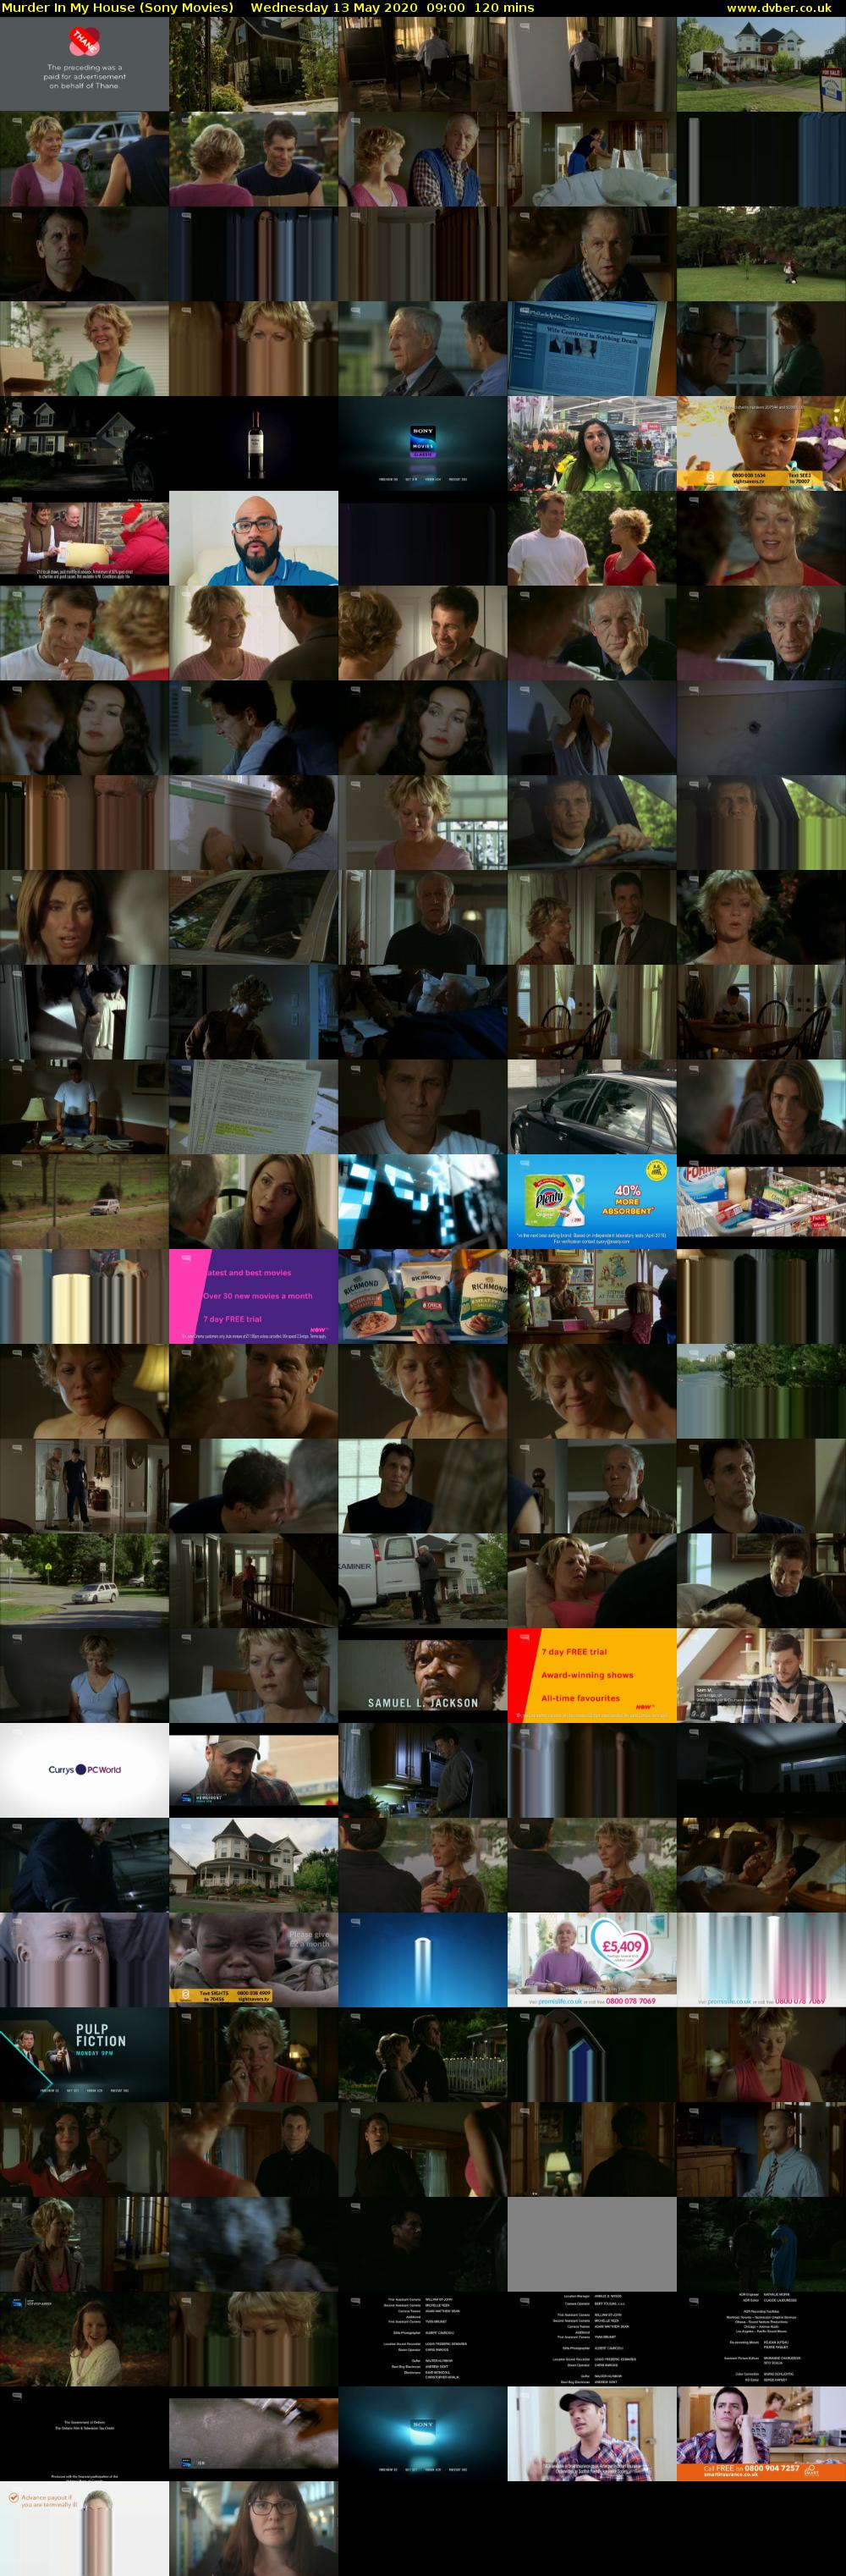 Murder In My House (Sony Movies) Wednesday 13 May 2020 09:00 - 11:00